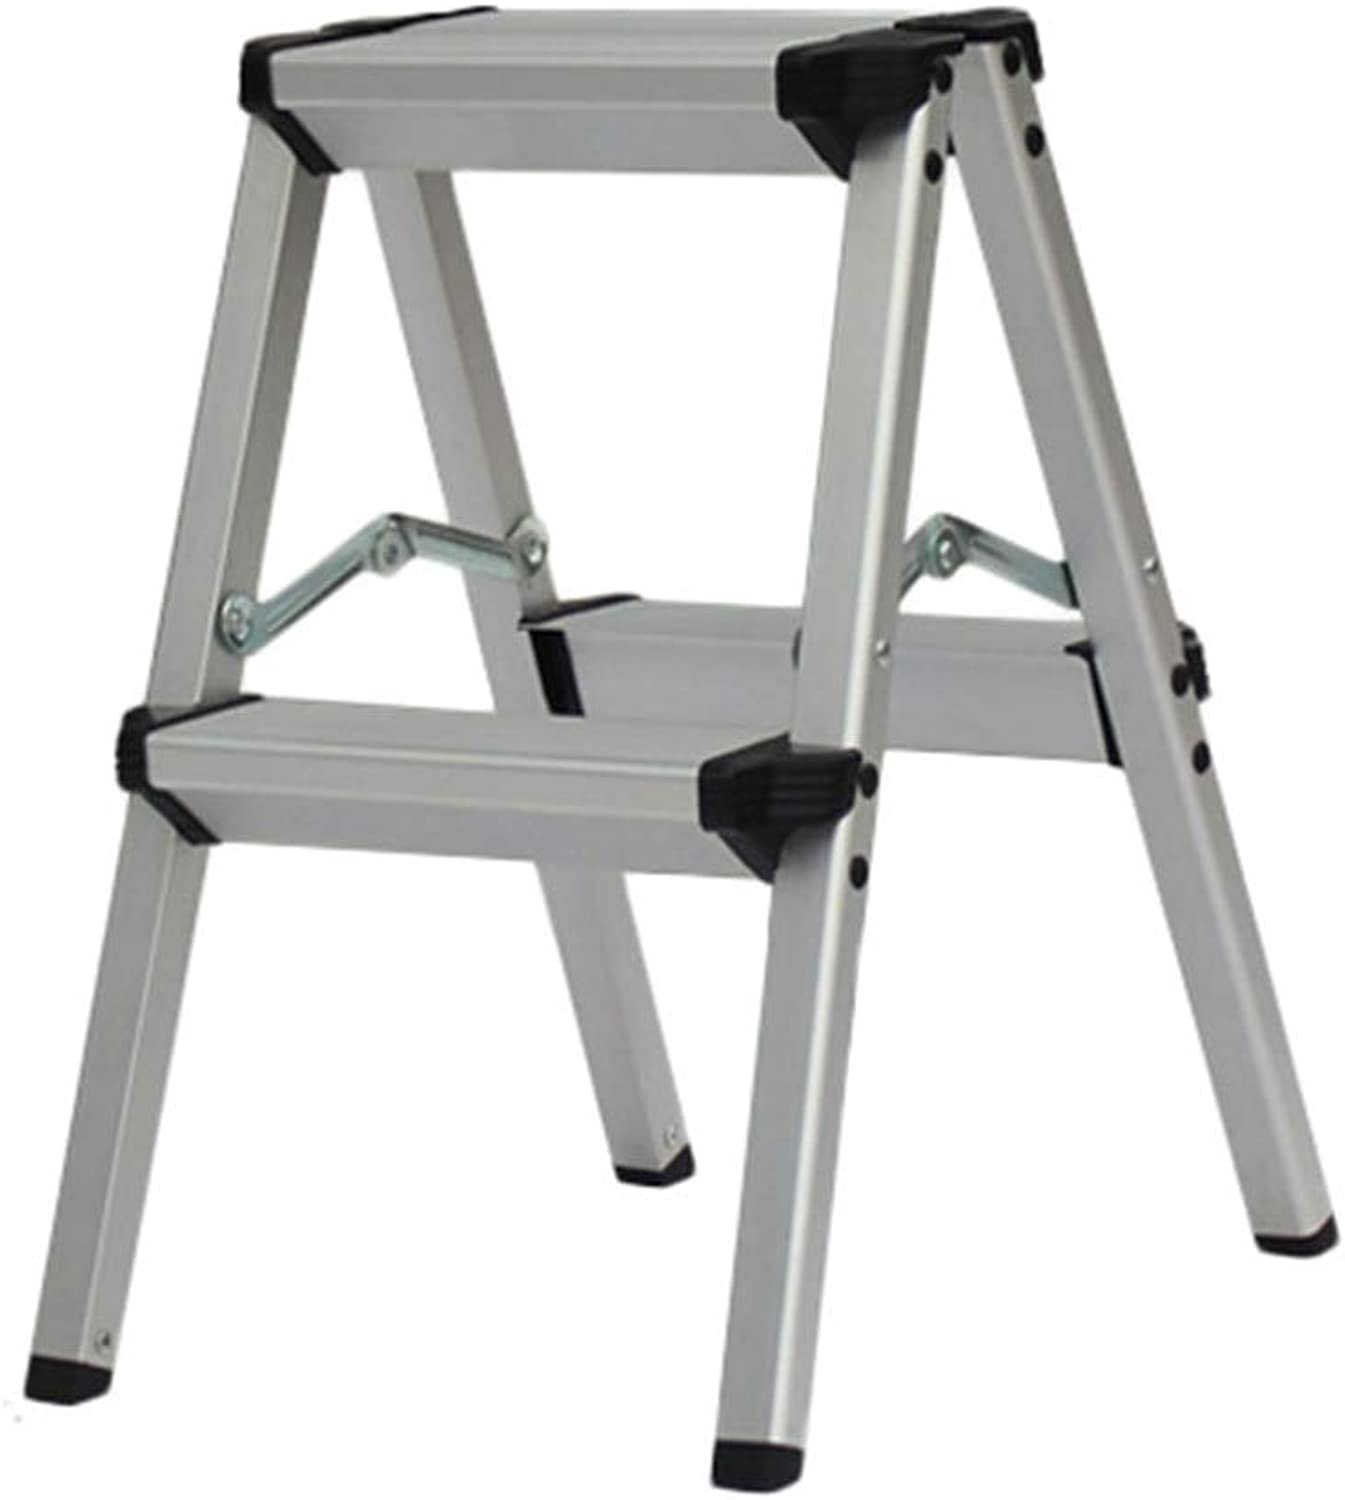 Portable Ladder Stool 3-Step Stools Easy to Store Foldable Design Ideal for Home Kitchen Garage (color   Black, Size   2 Steps)